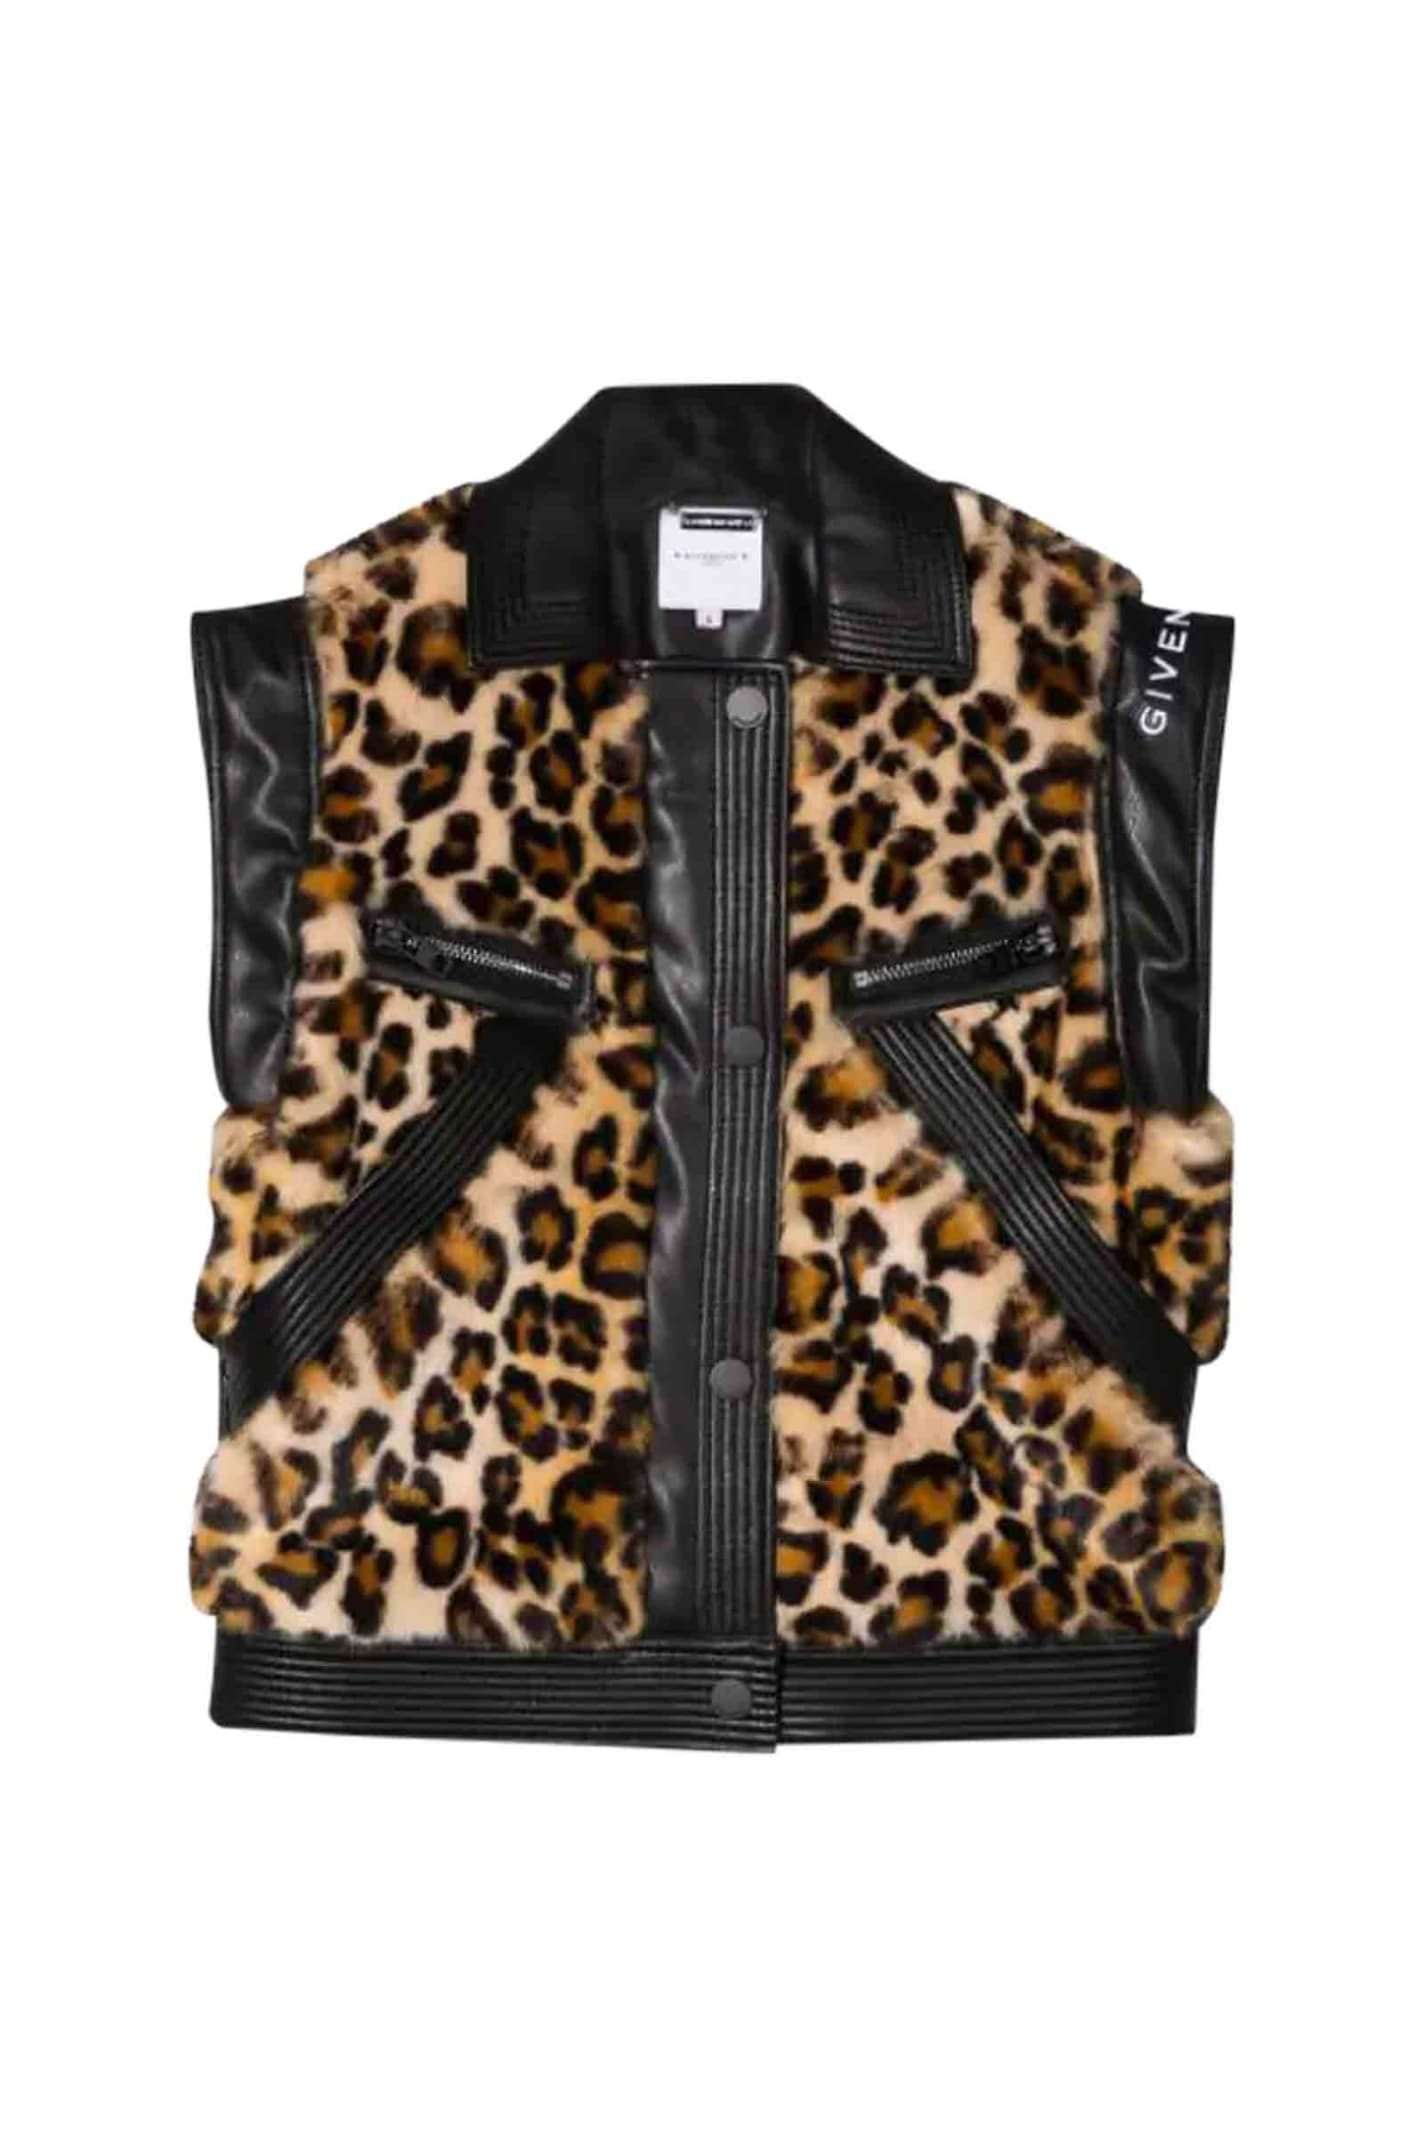 Givenchy Kids' Sleeveless Jacket With Print In Var. Uni